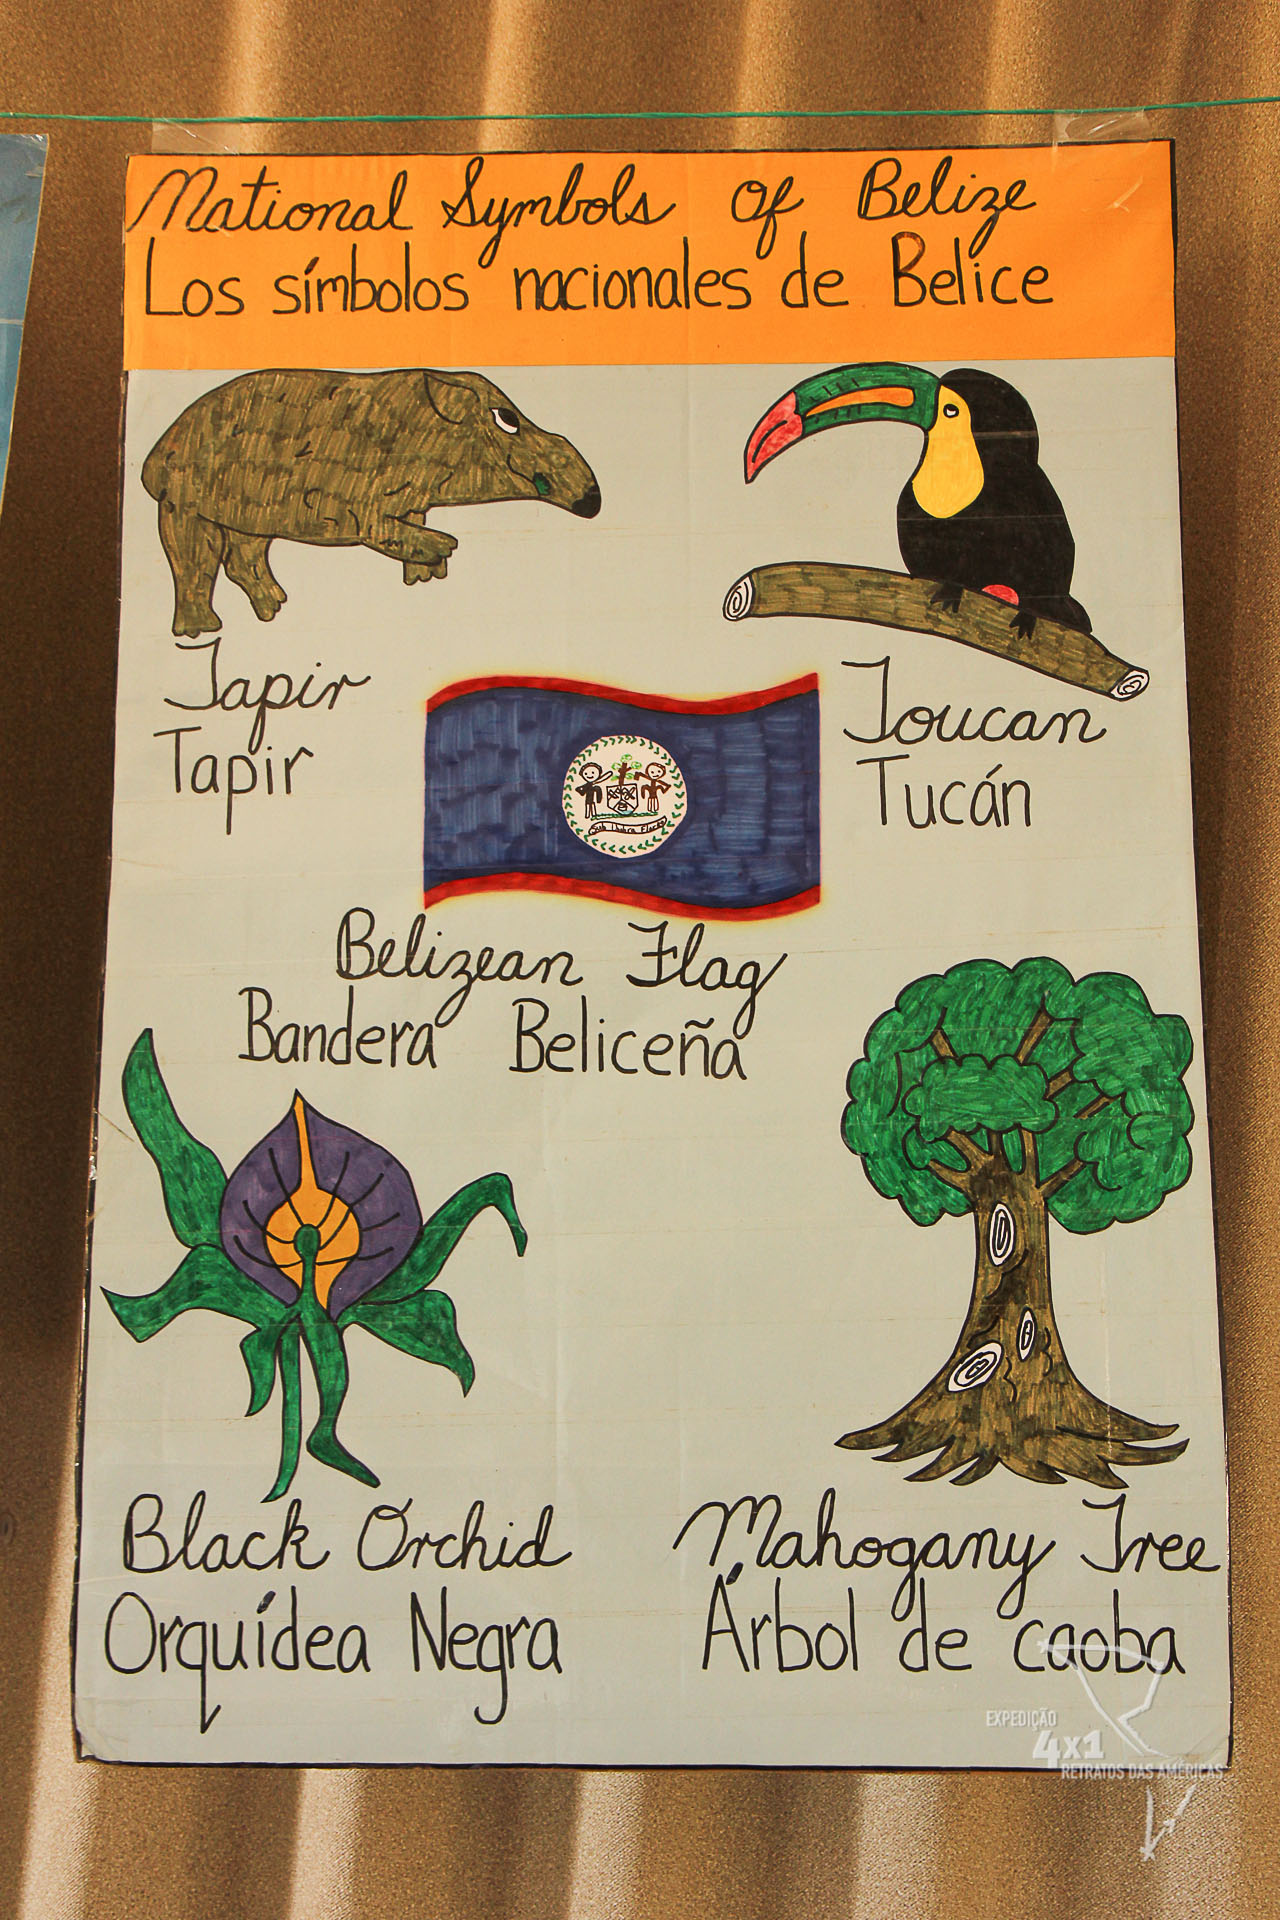 Africans to the caribbean and dwelt about when we return to school a comic hanging in the room helps students memorize the national symbols of belize and you know what are the official symbols of brazil biocorpaavc Image collections